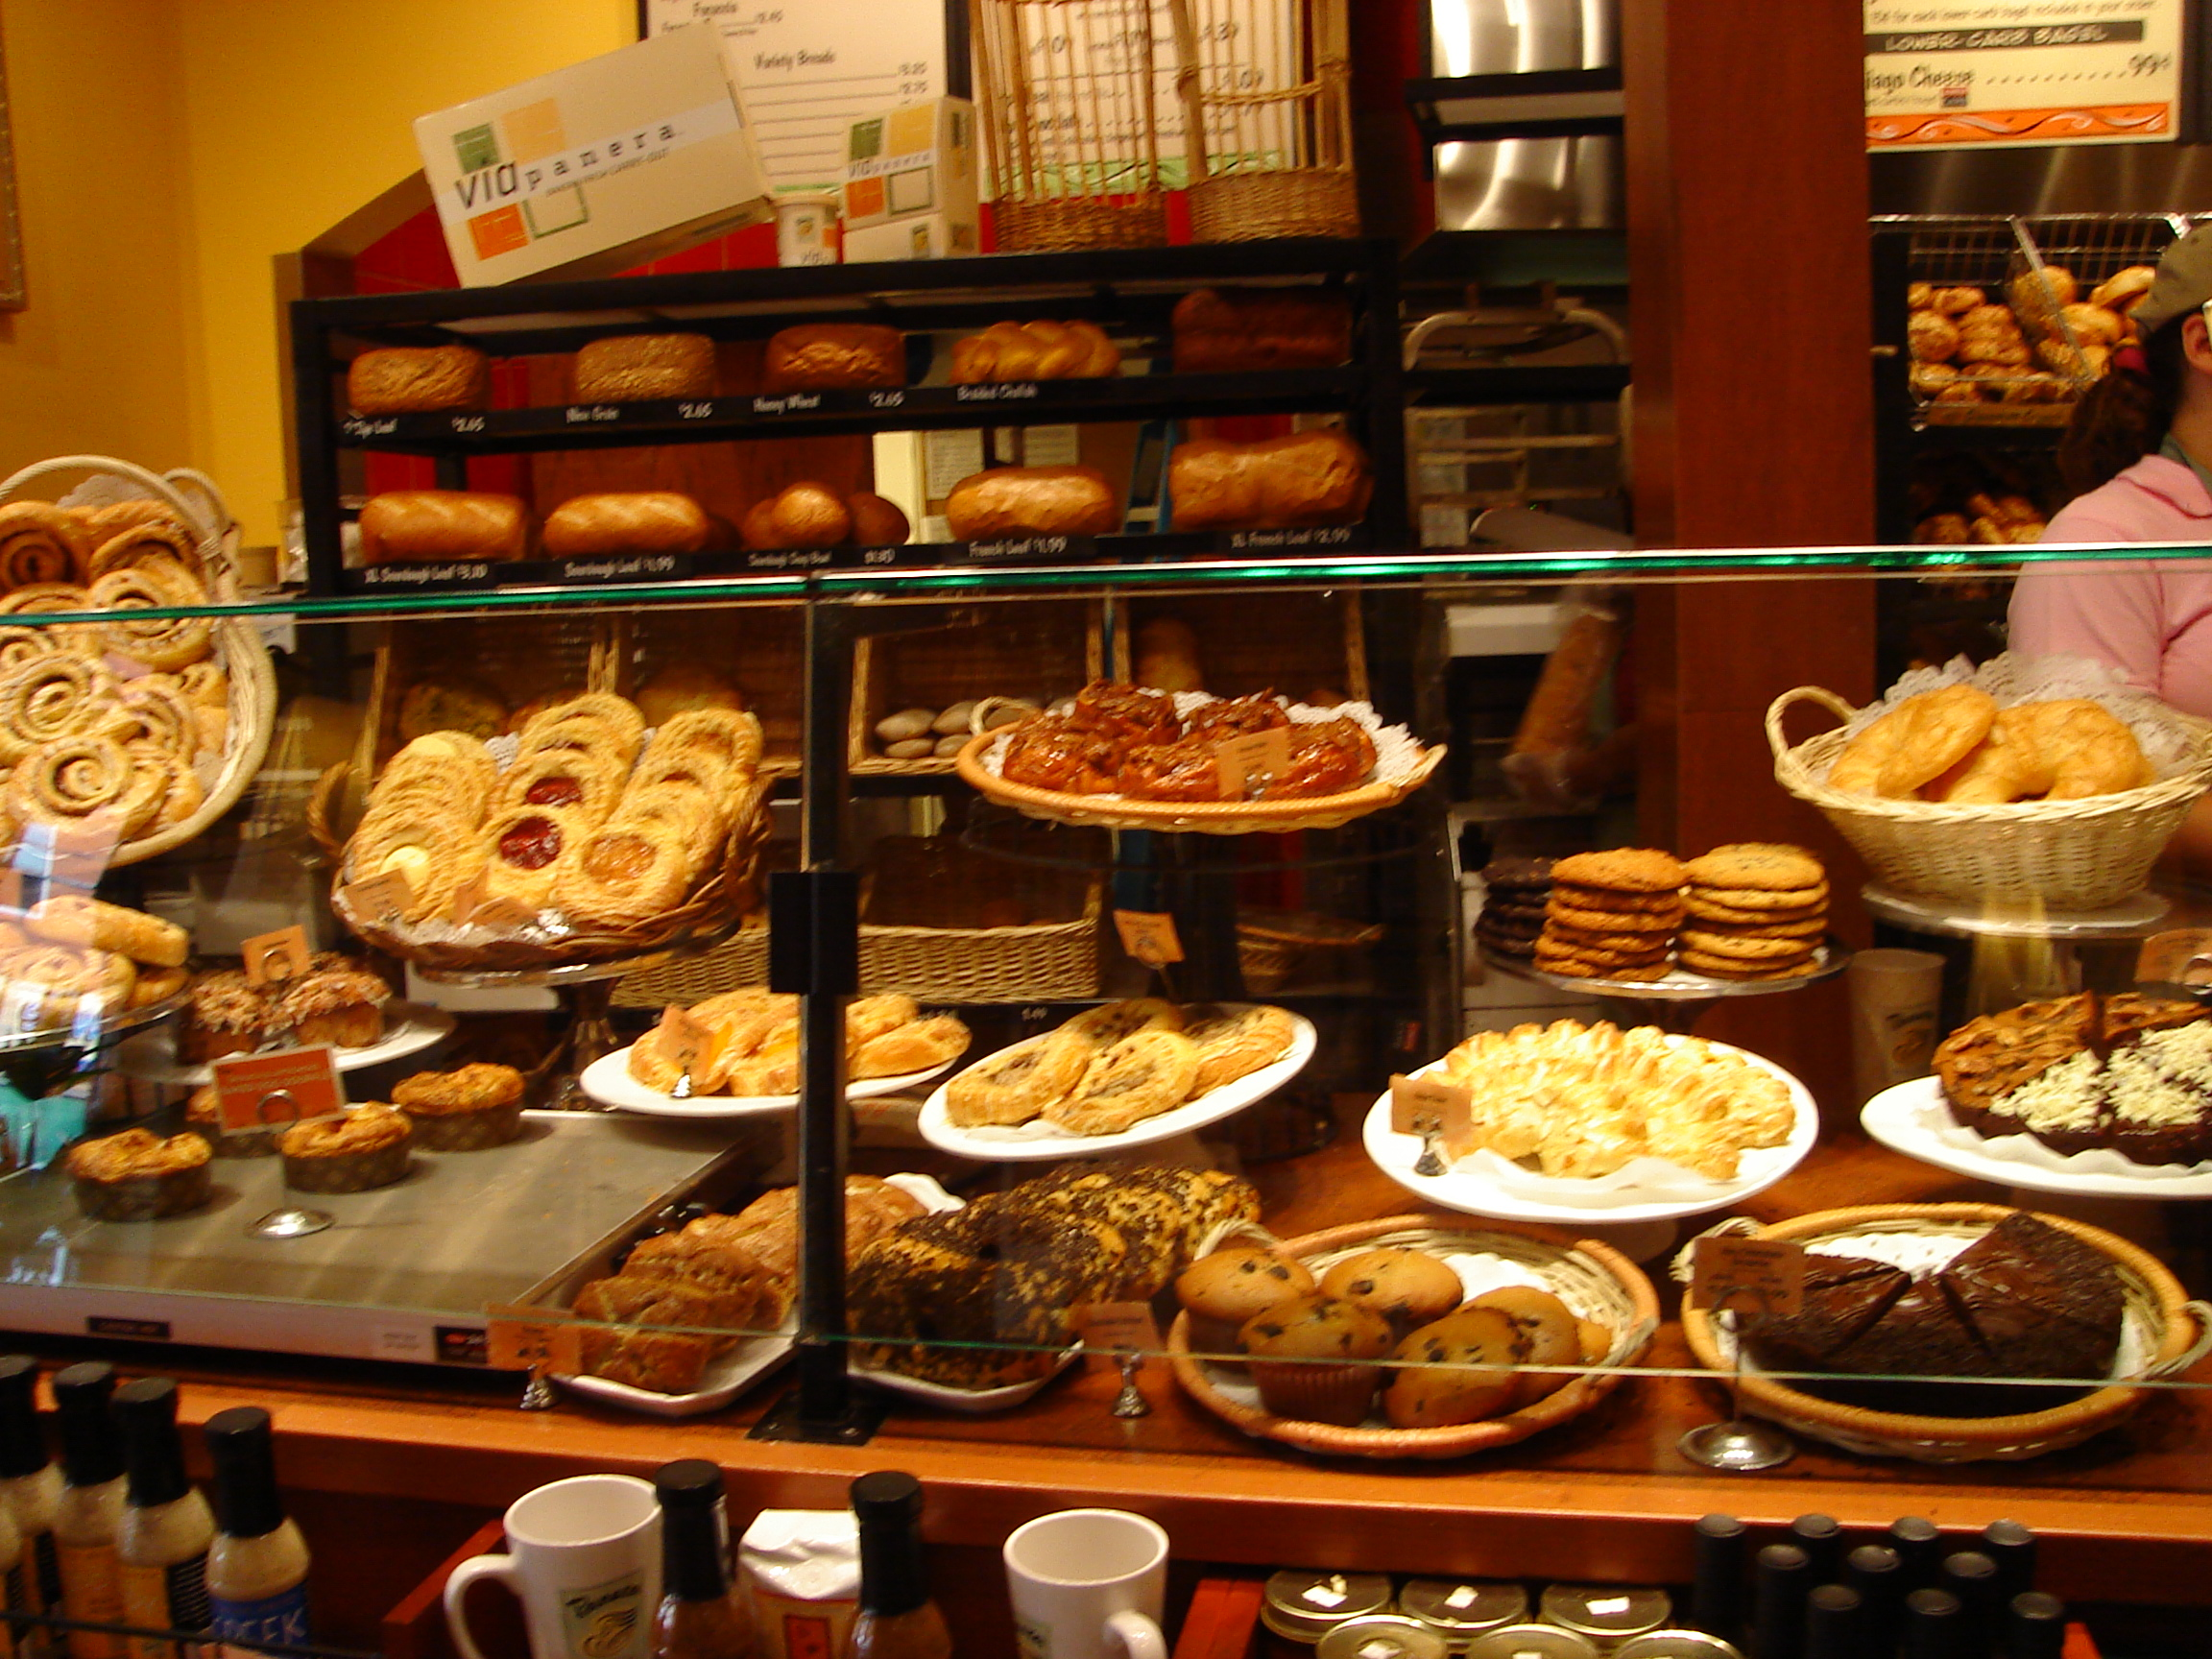 Here are the pastries at Panera Bread: